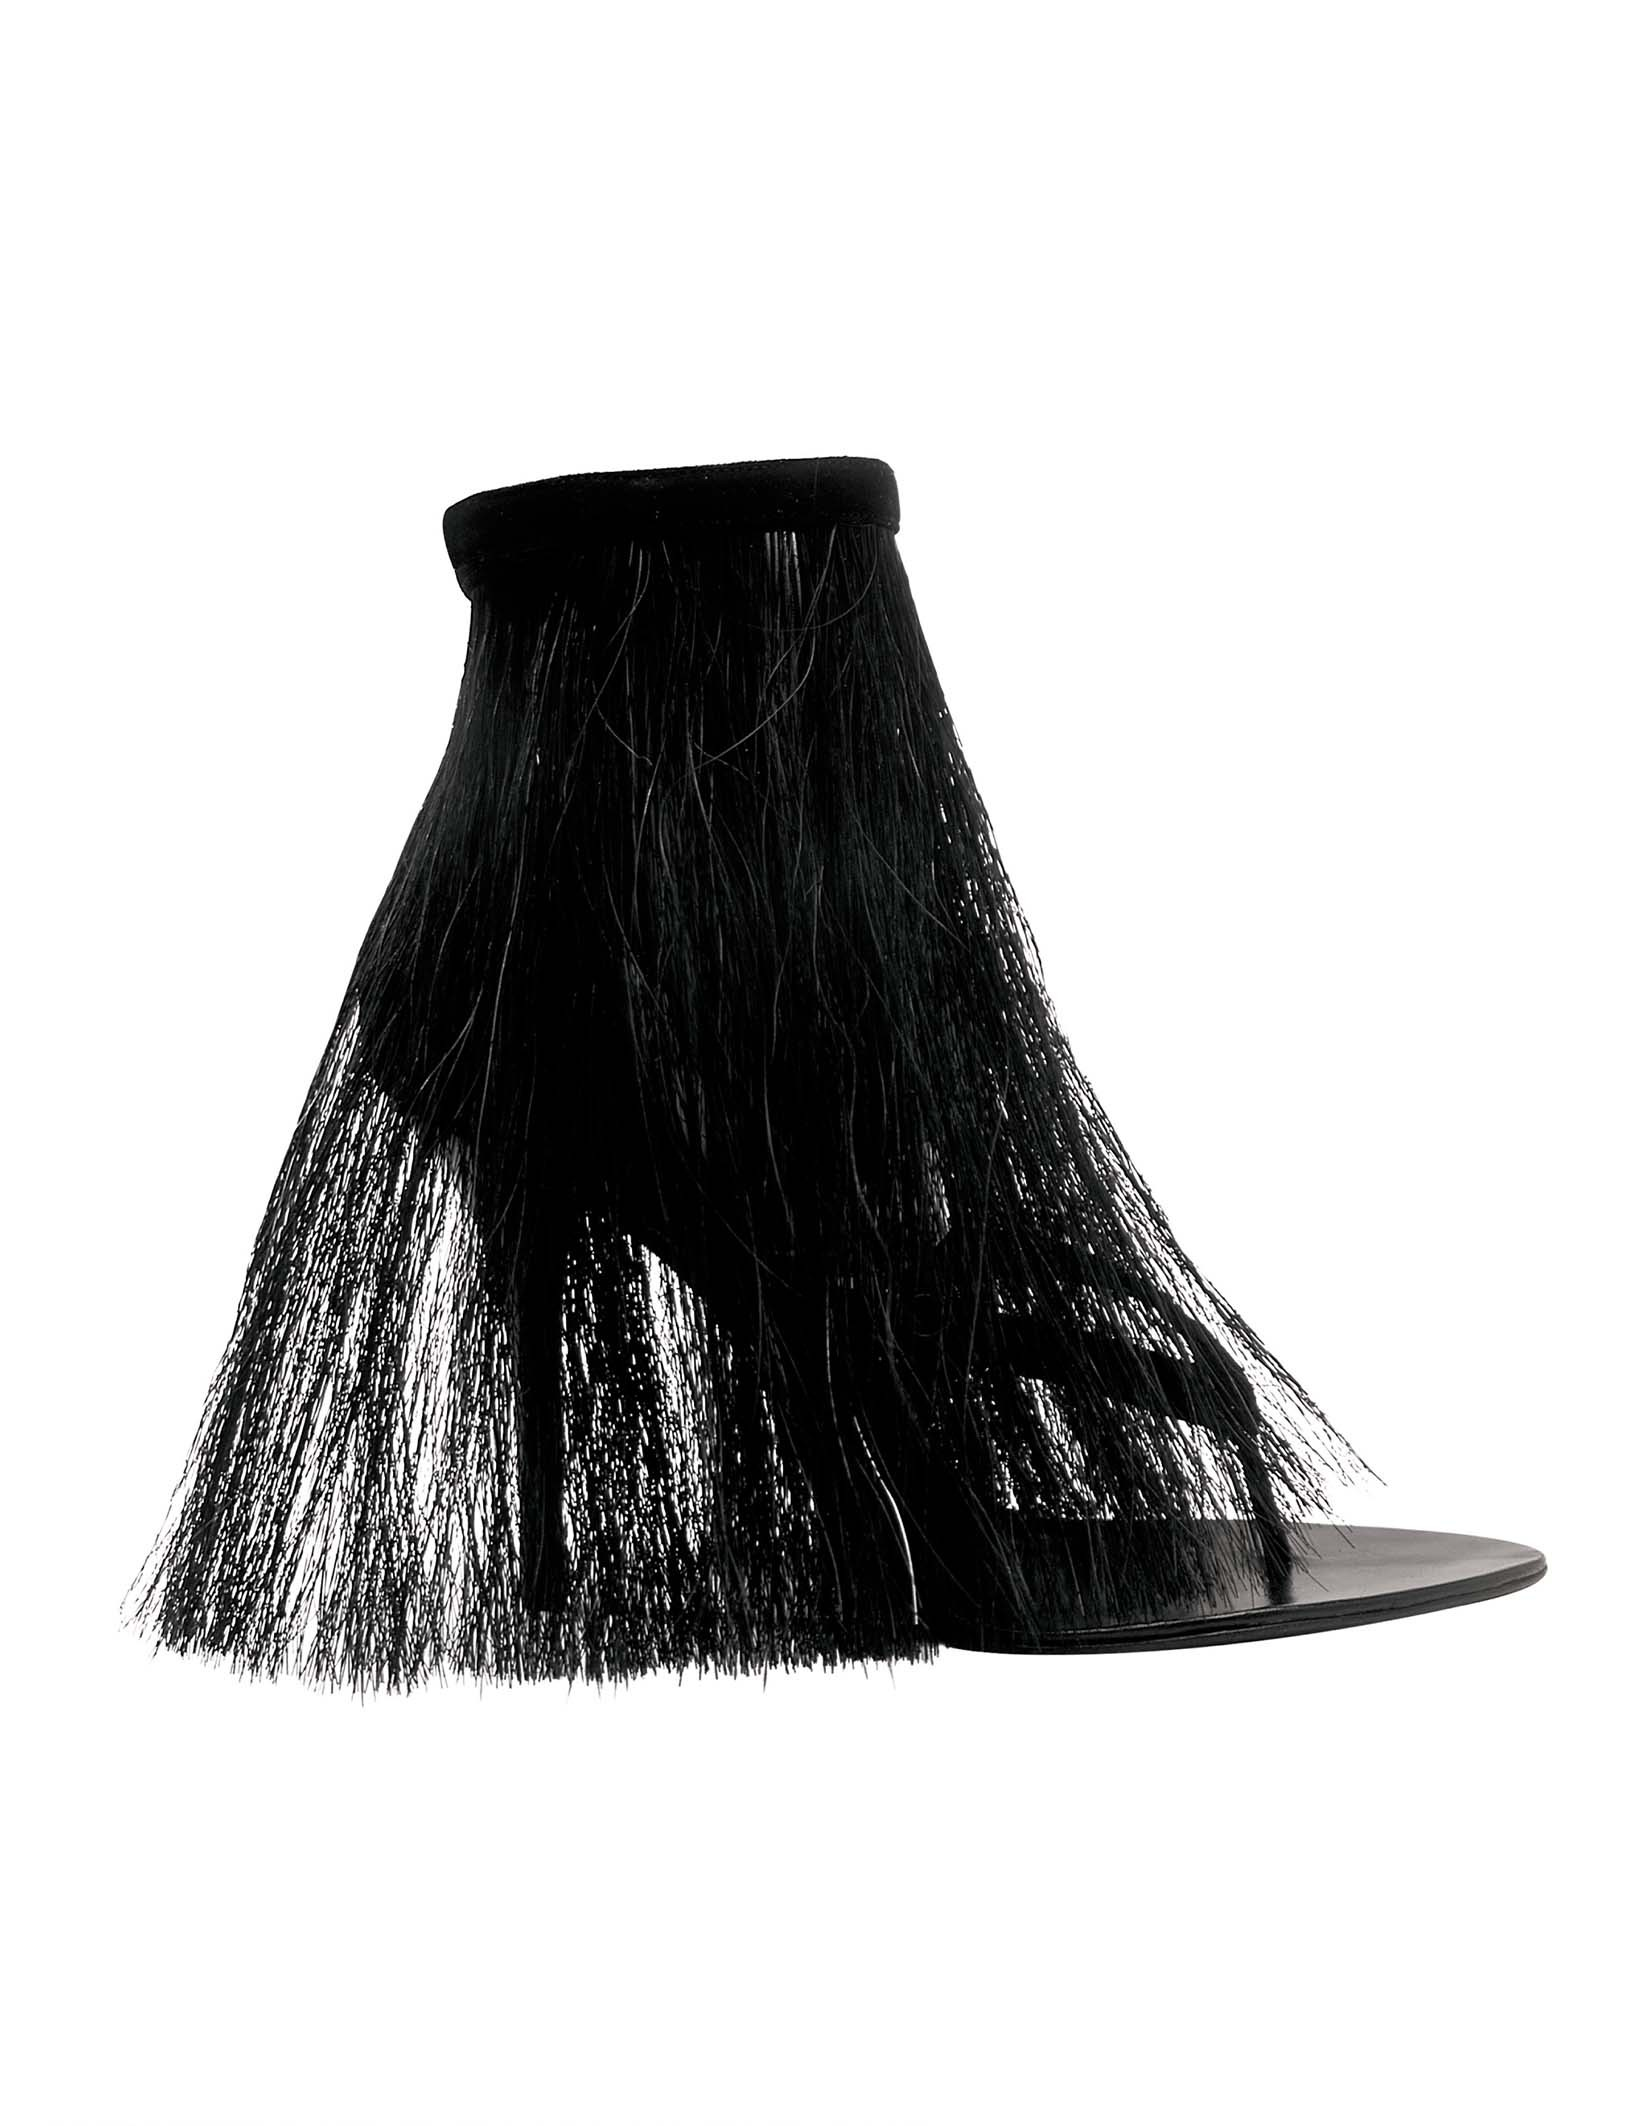 <BODY>Helmut Lang, FW 04/05<br />V-strap sandal in horsehair and suede<br />© hl-art</BODY>